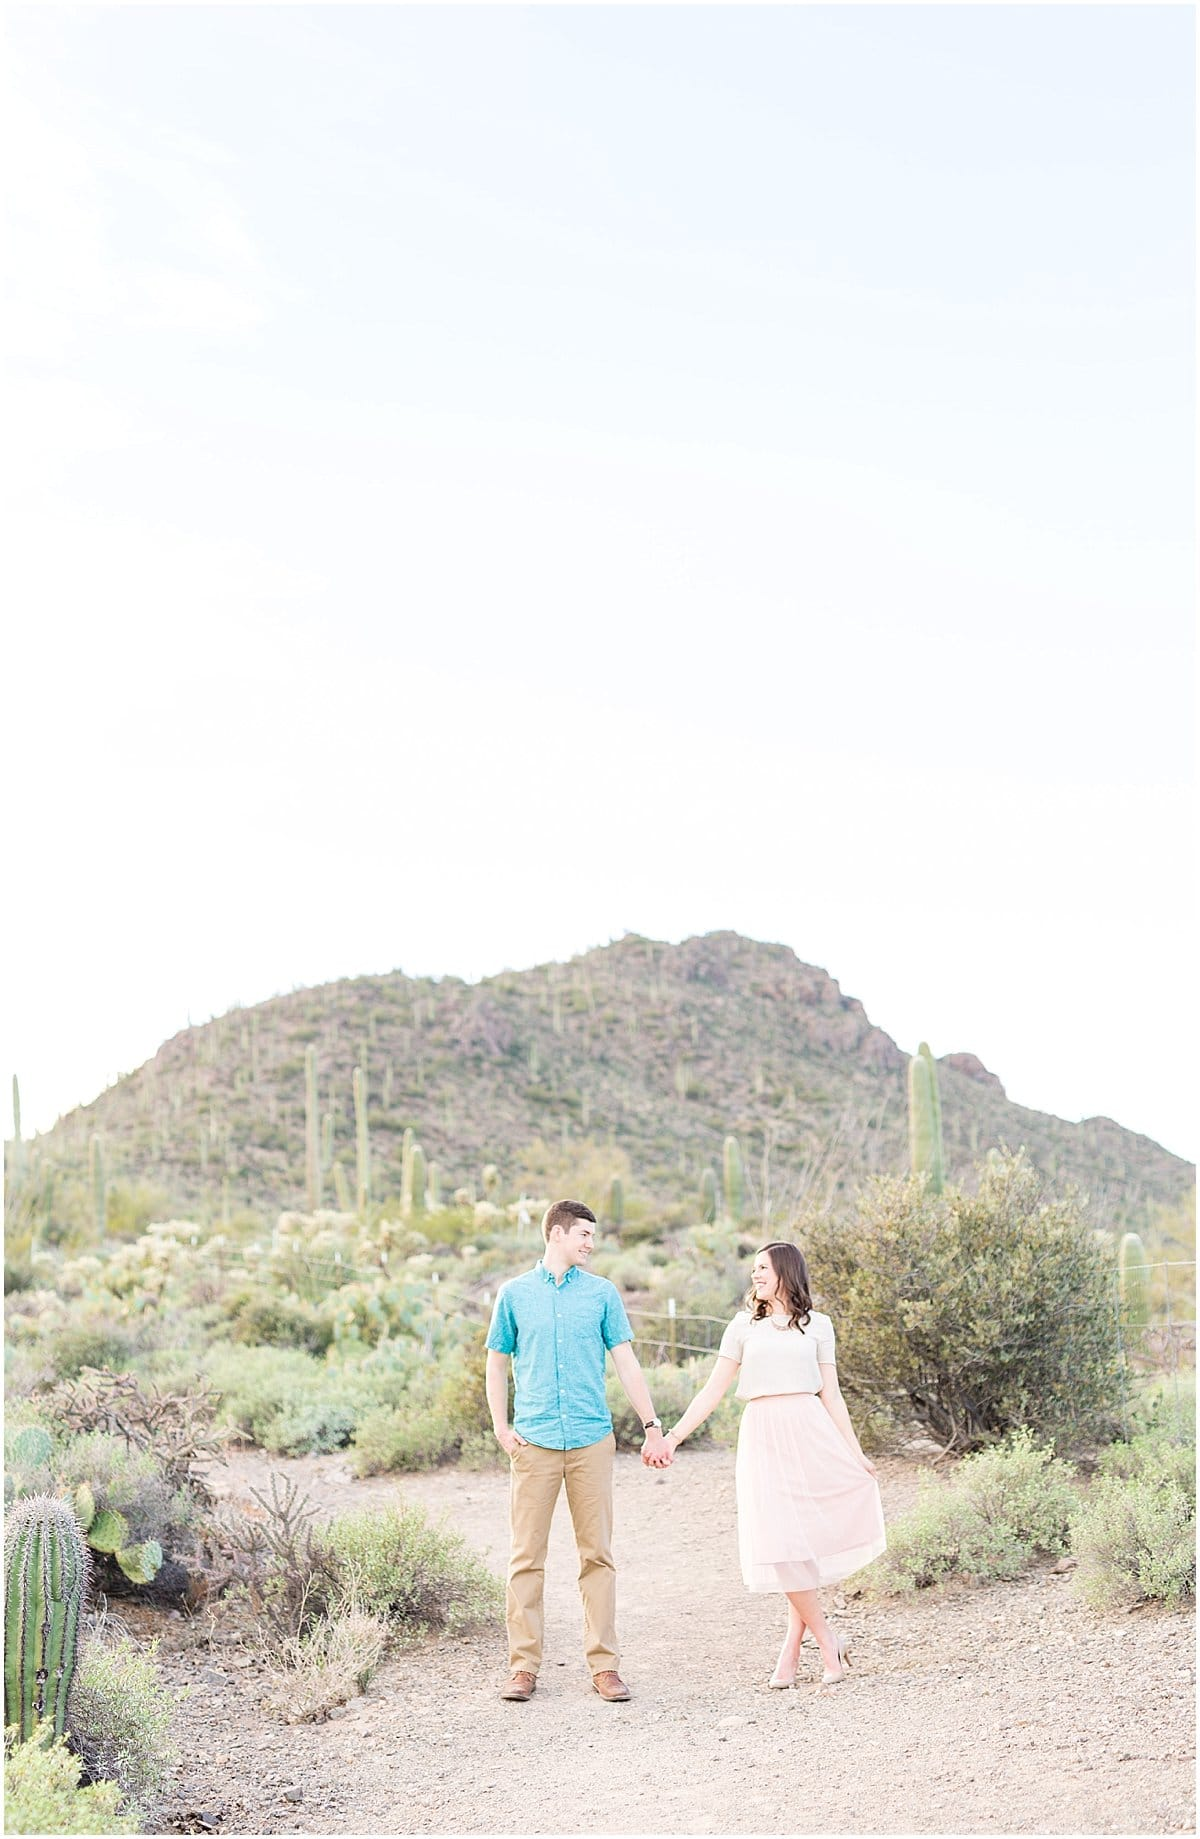 married-arizona-desert-cassidymrphotography_0010